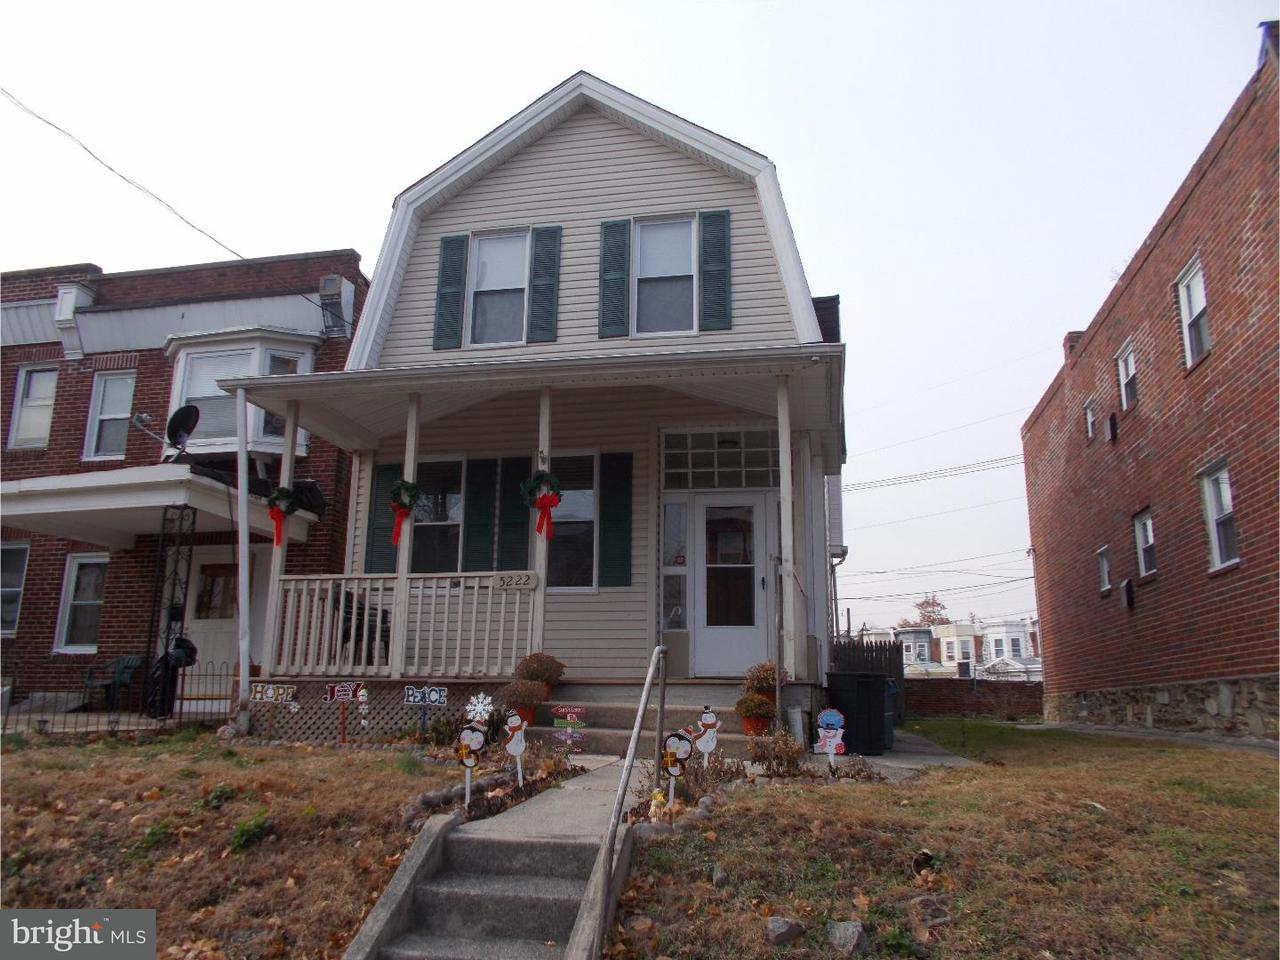 5222 N 11TH Philadelphia , PA 19141